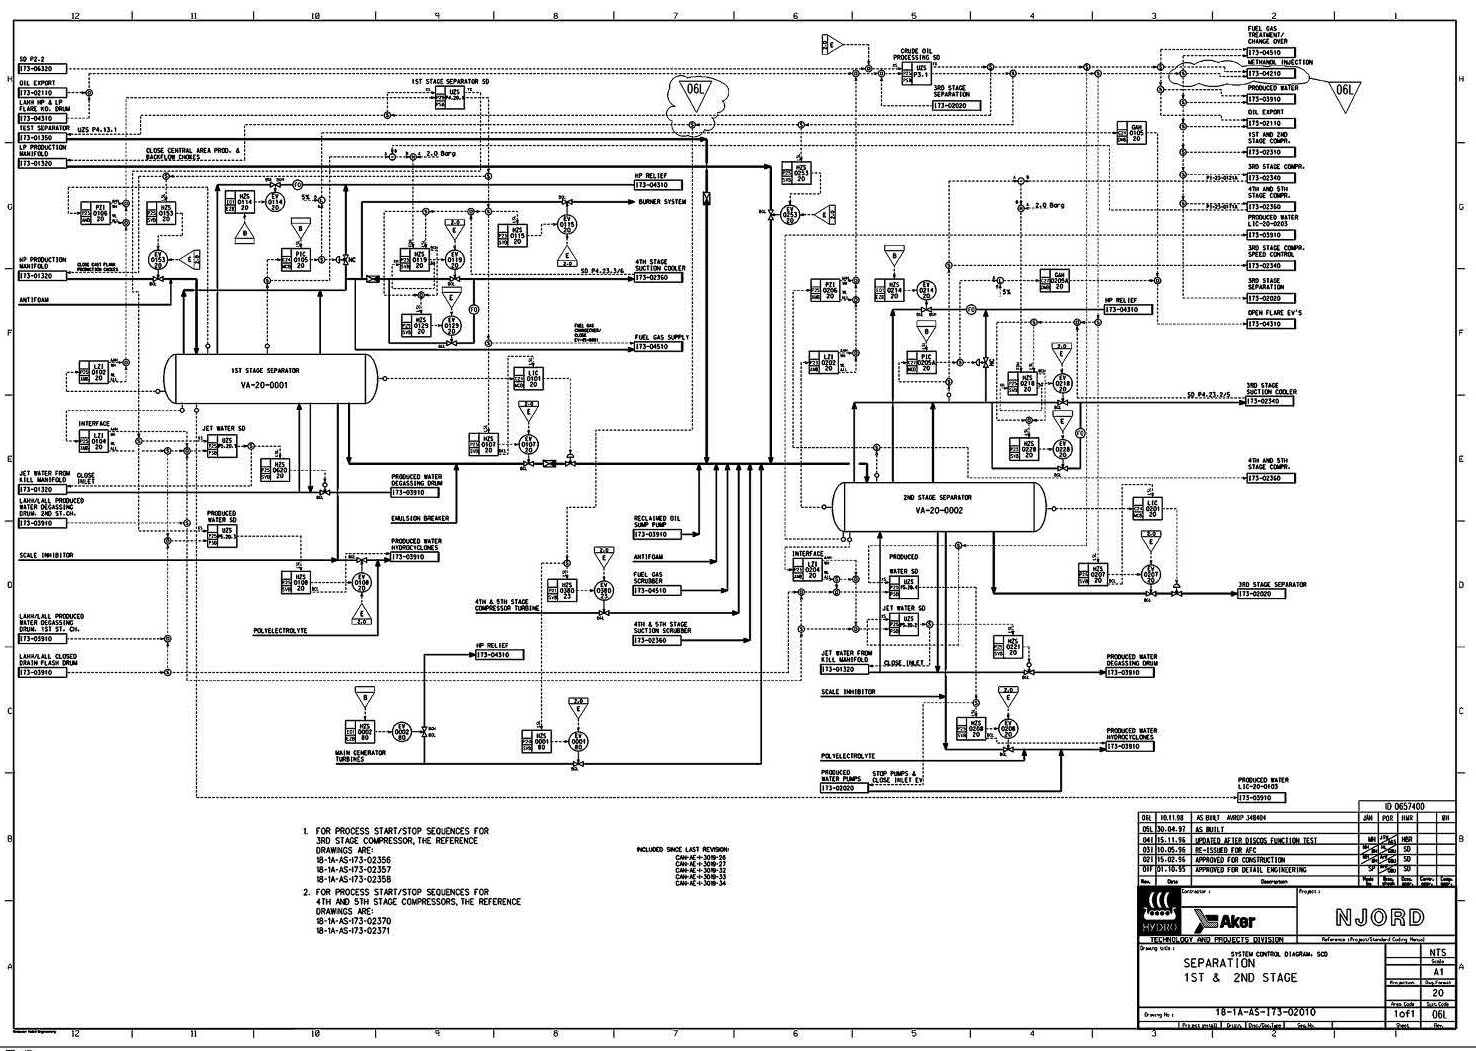 small resolution of these include loop diagram instrument datasheet cable schedule and termination list